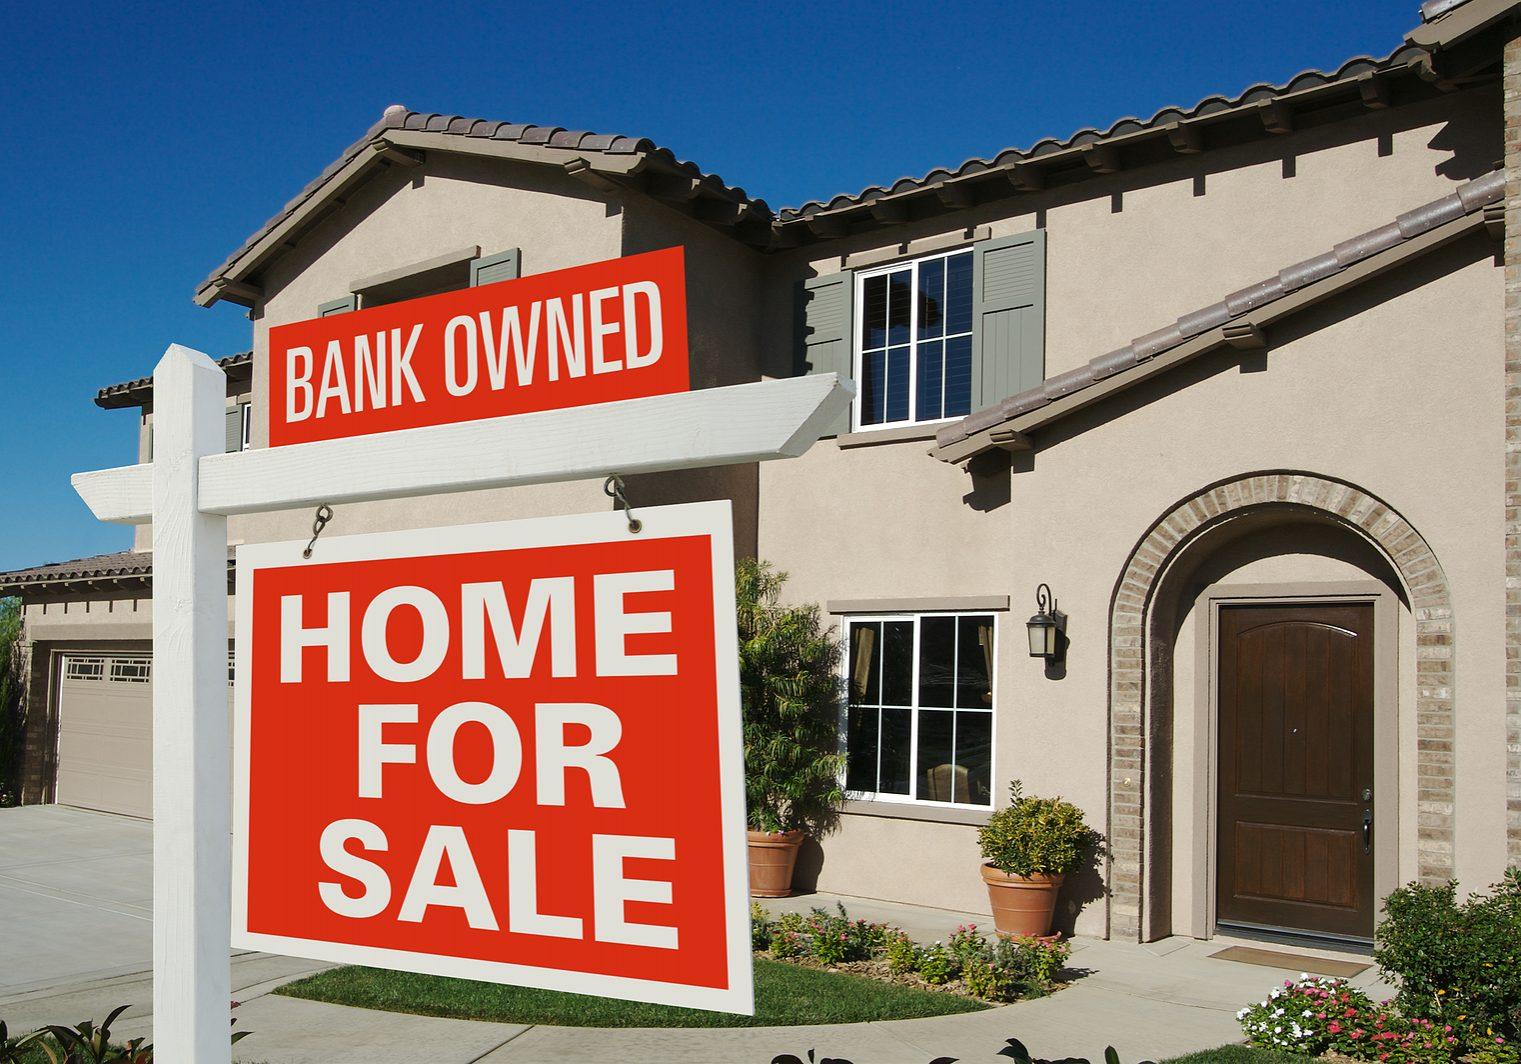 Bank Owned Home For Sale Sign in Front of New House on Deep Blue Sky